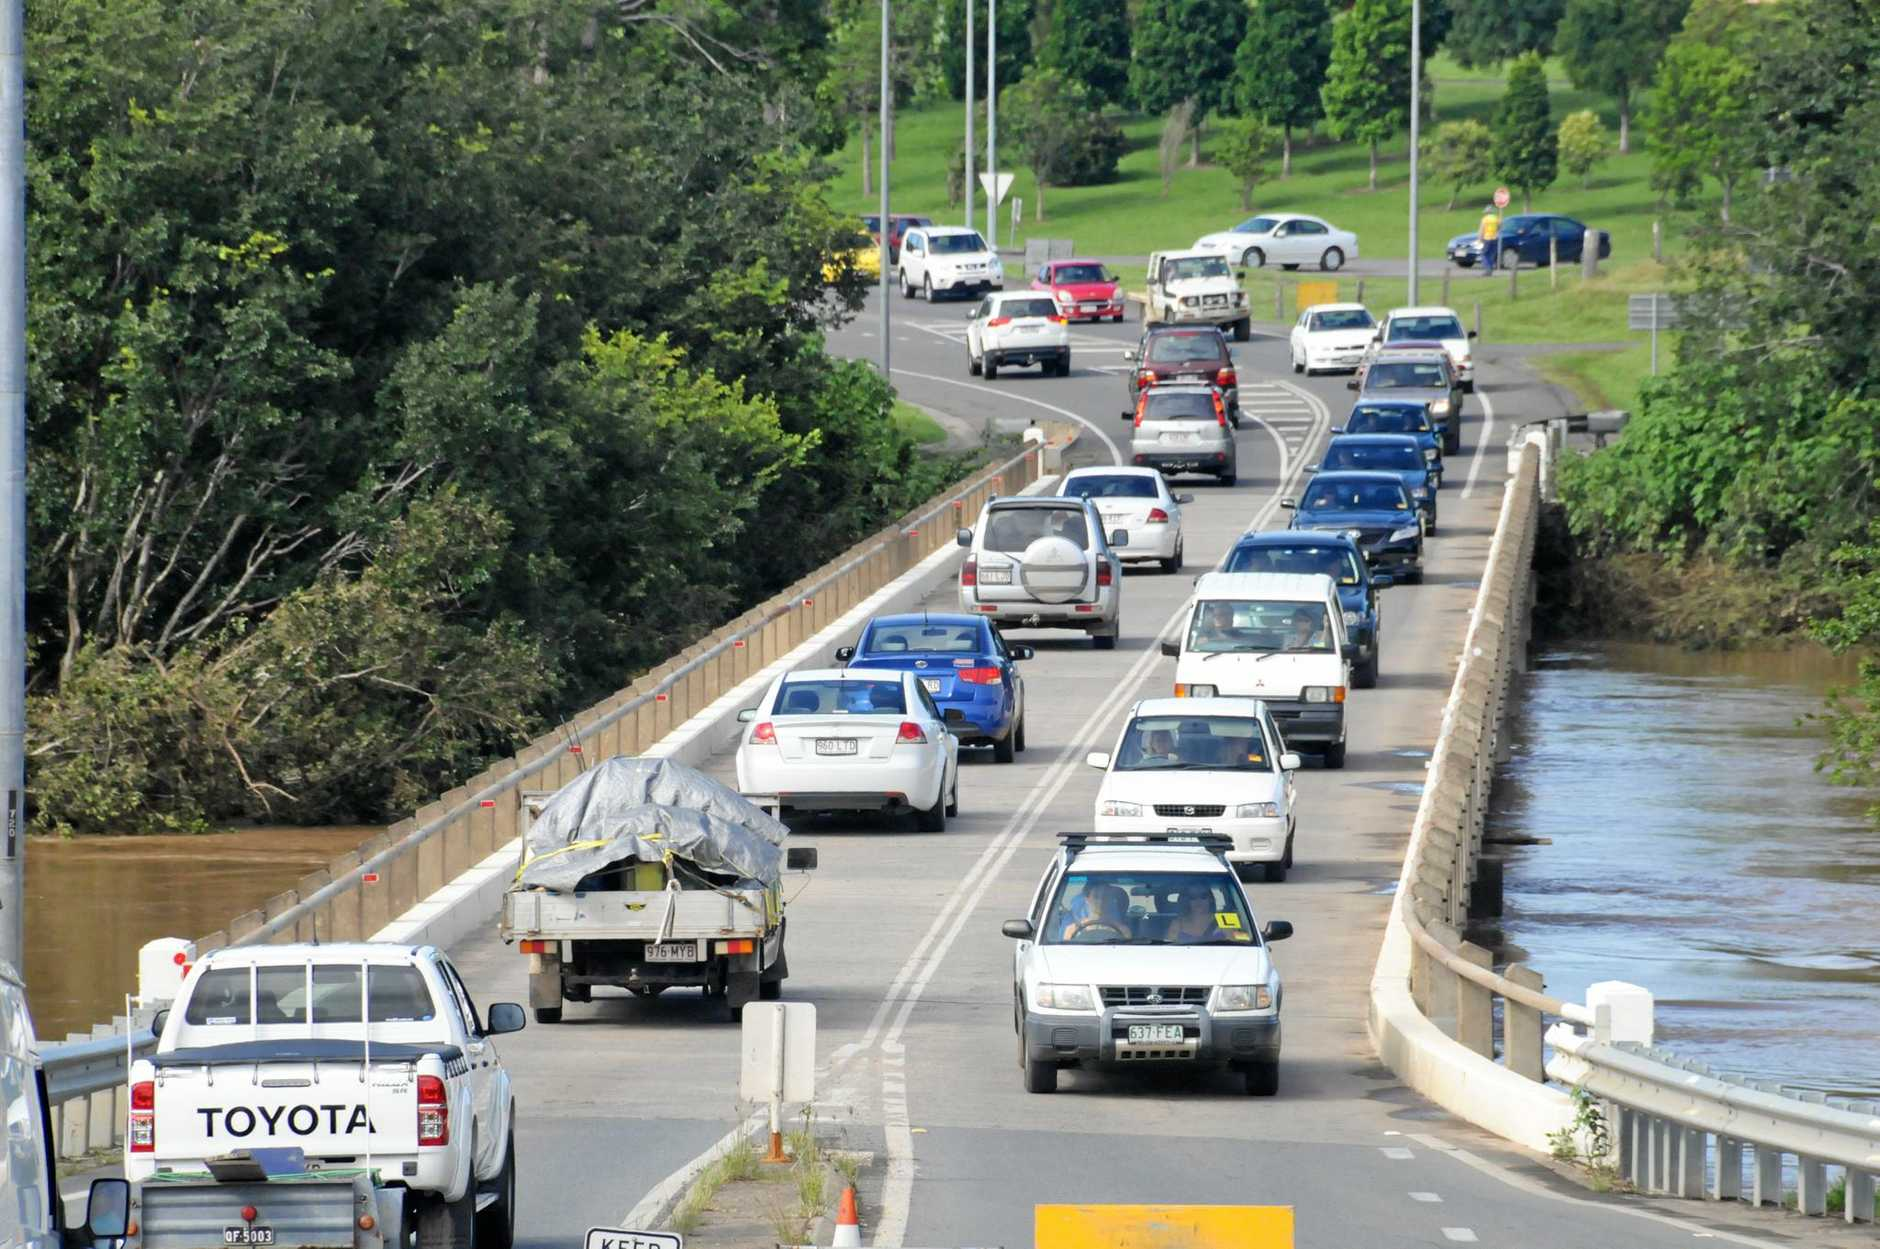 Traffic over Normanby kidd bridge is flooded Photo Renee Pilcher / The Gympie Times